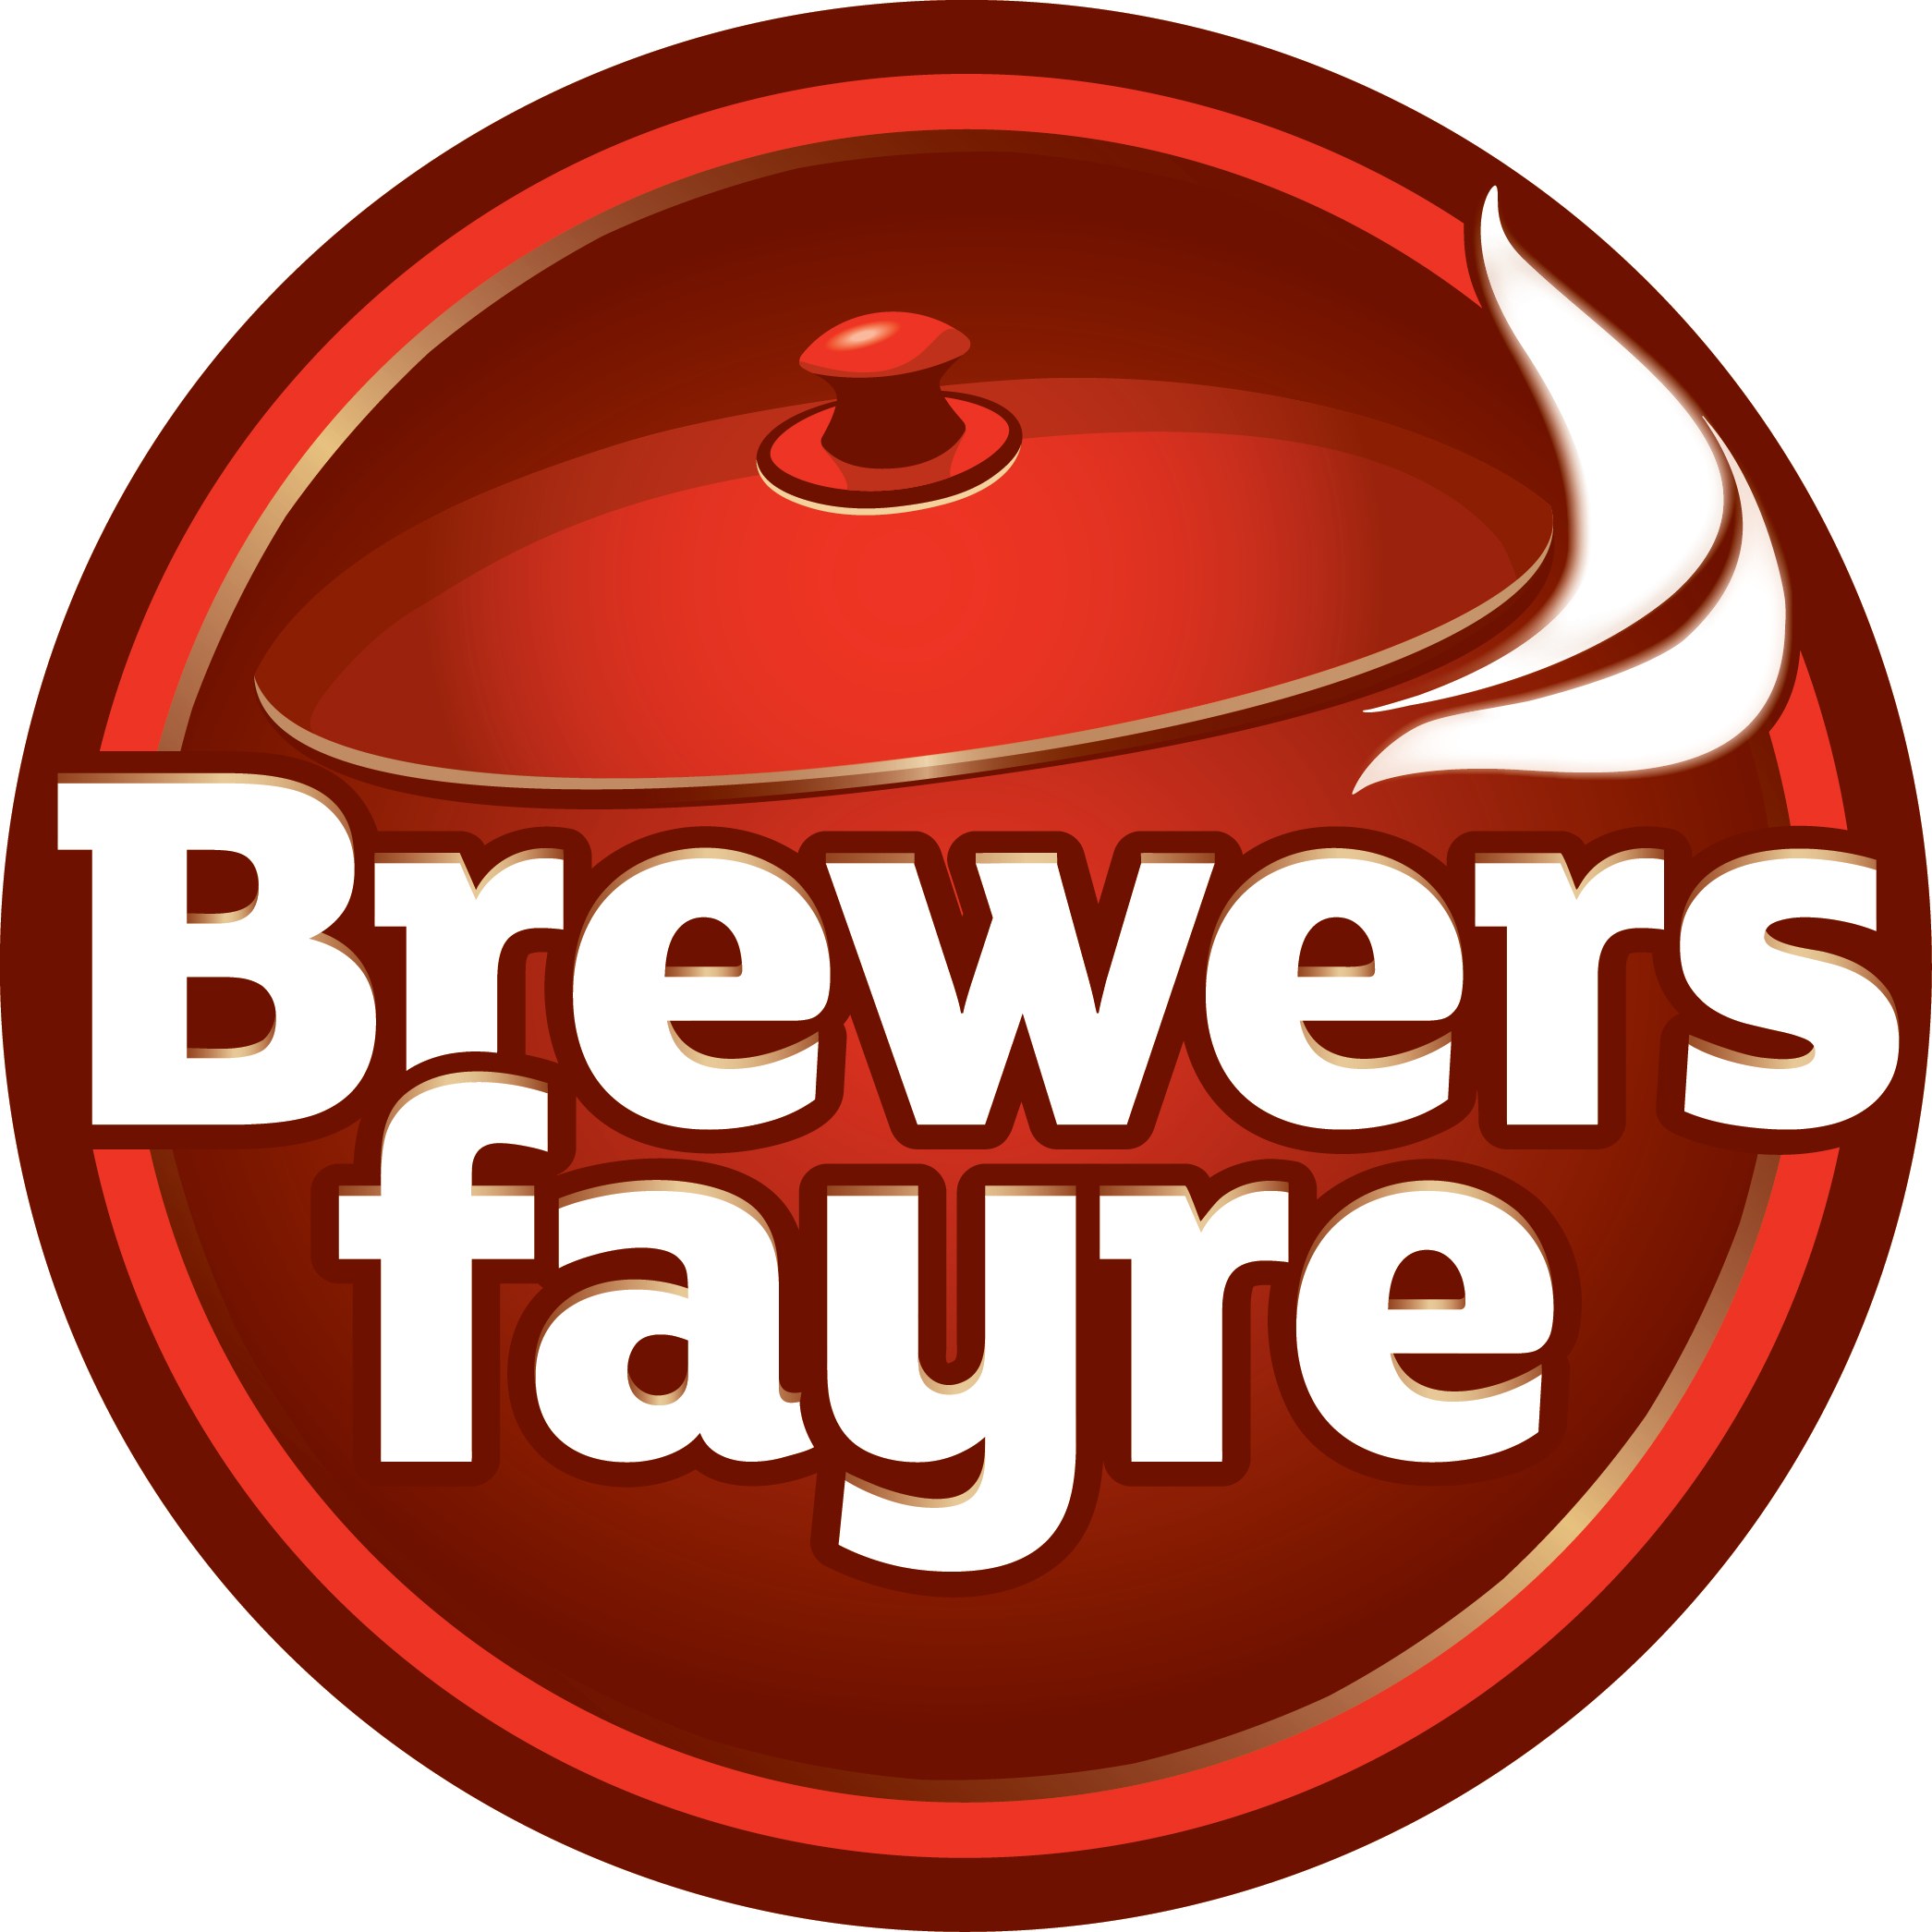 Brewers Fayre Chapel Brook